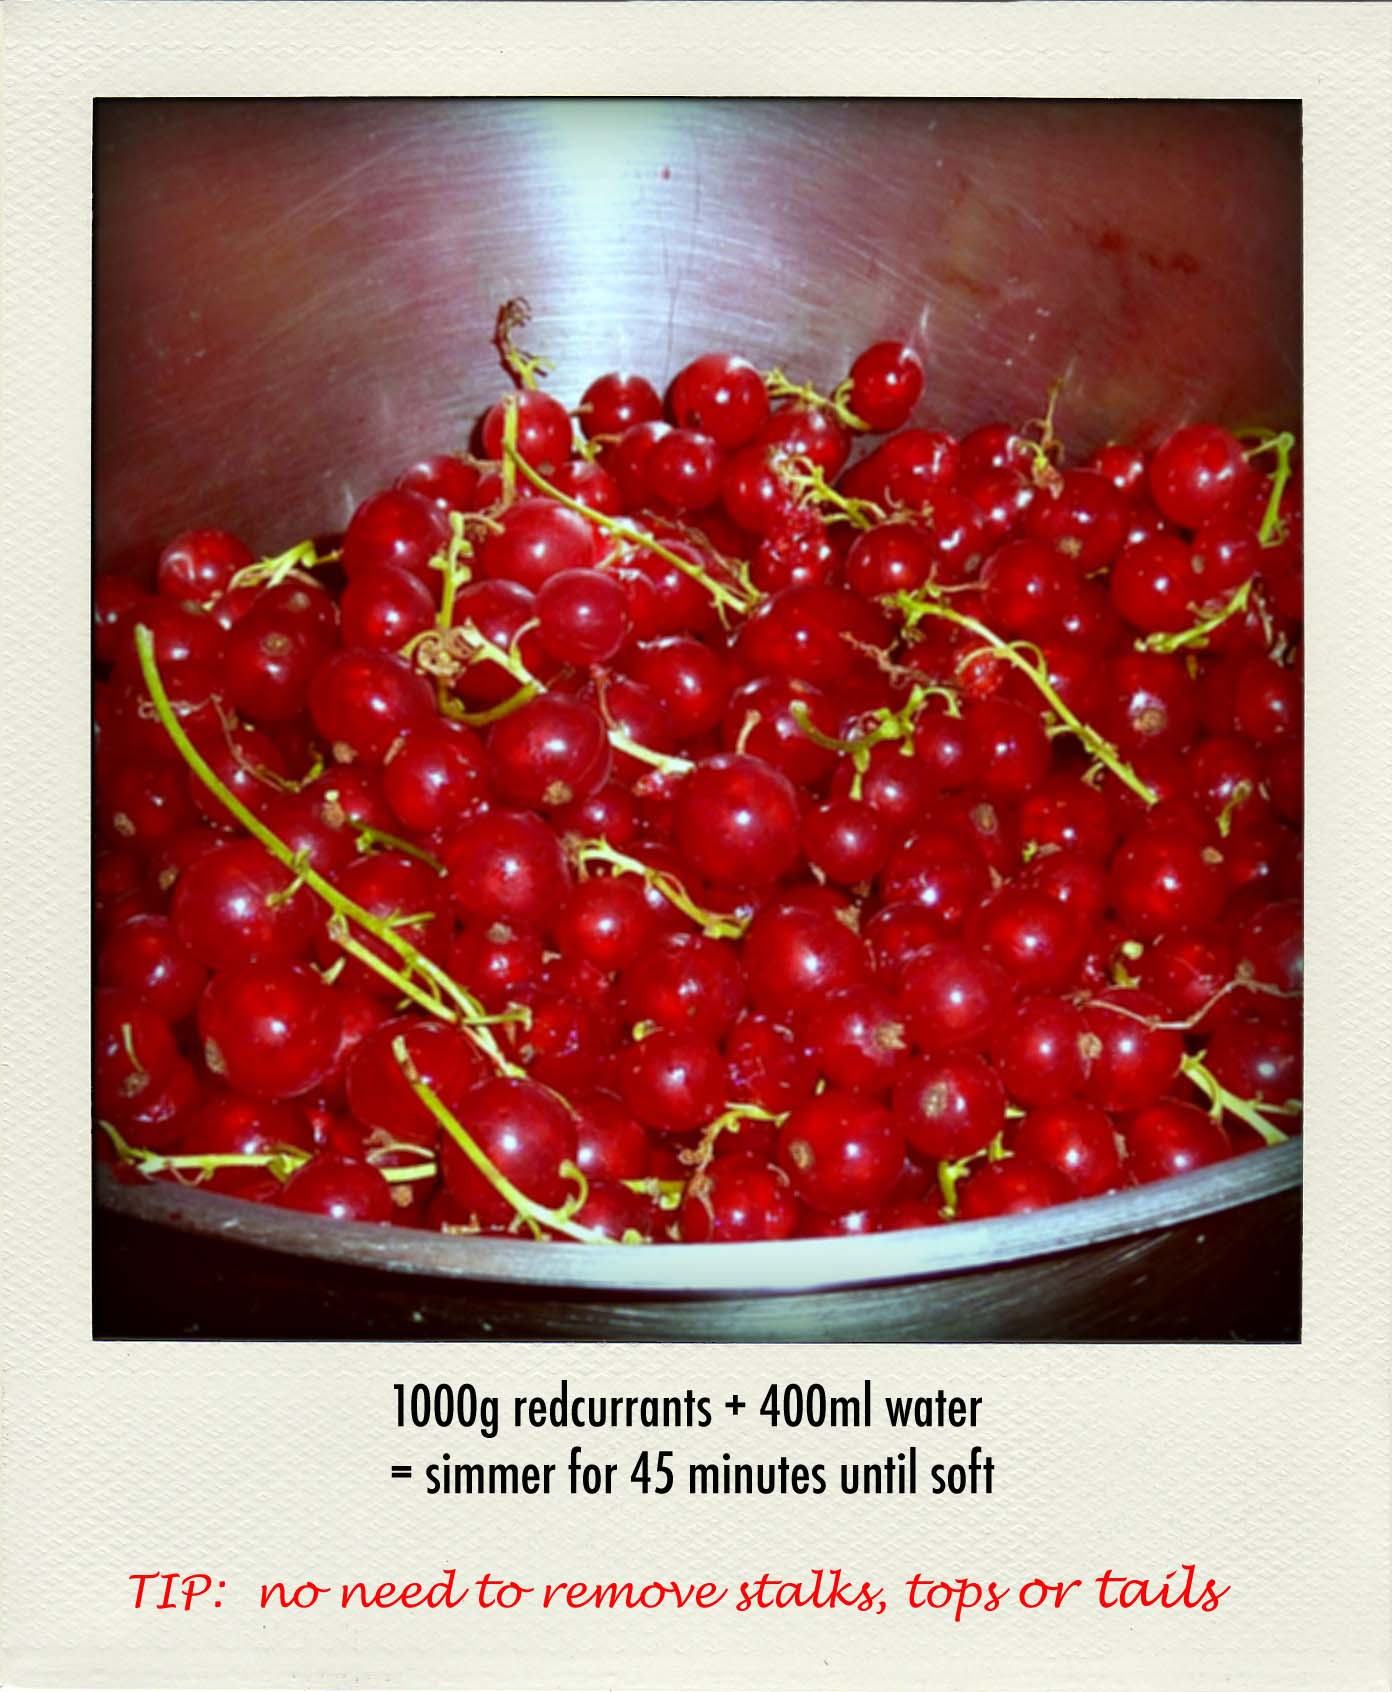 redcurrant jelly 1_in pan-pola copy